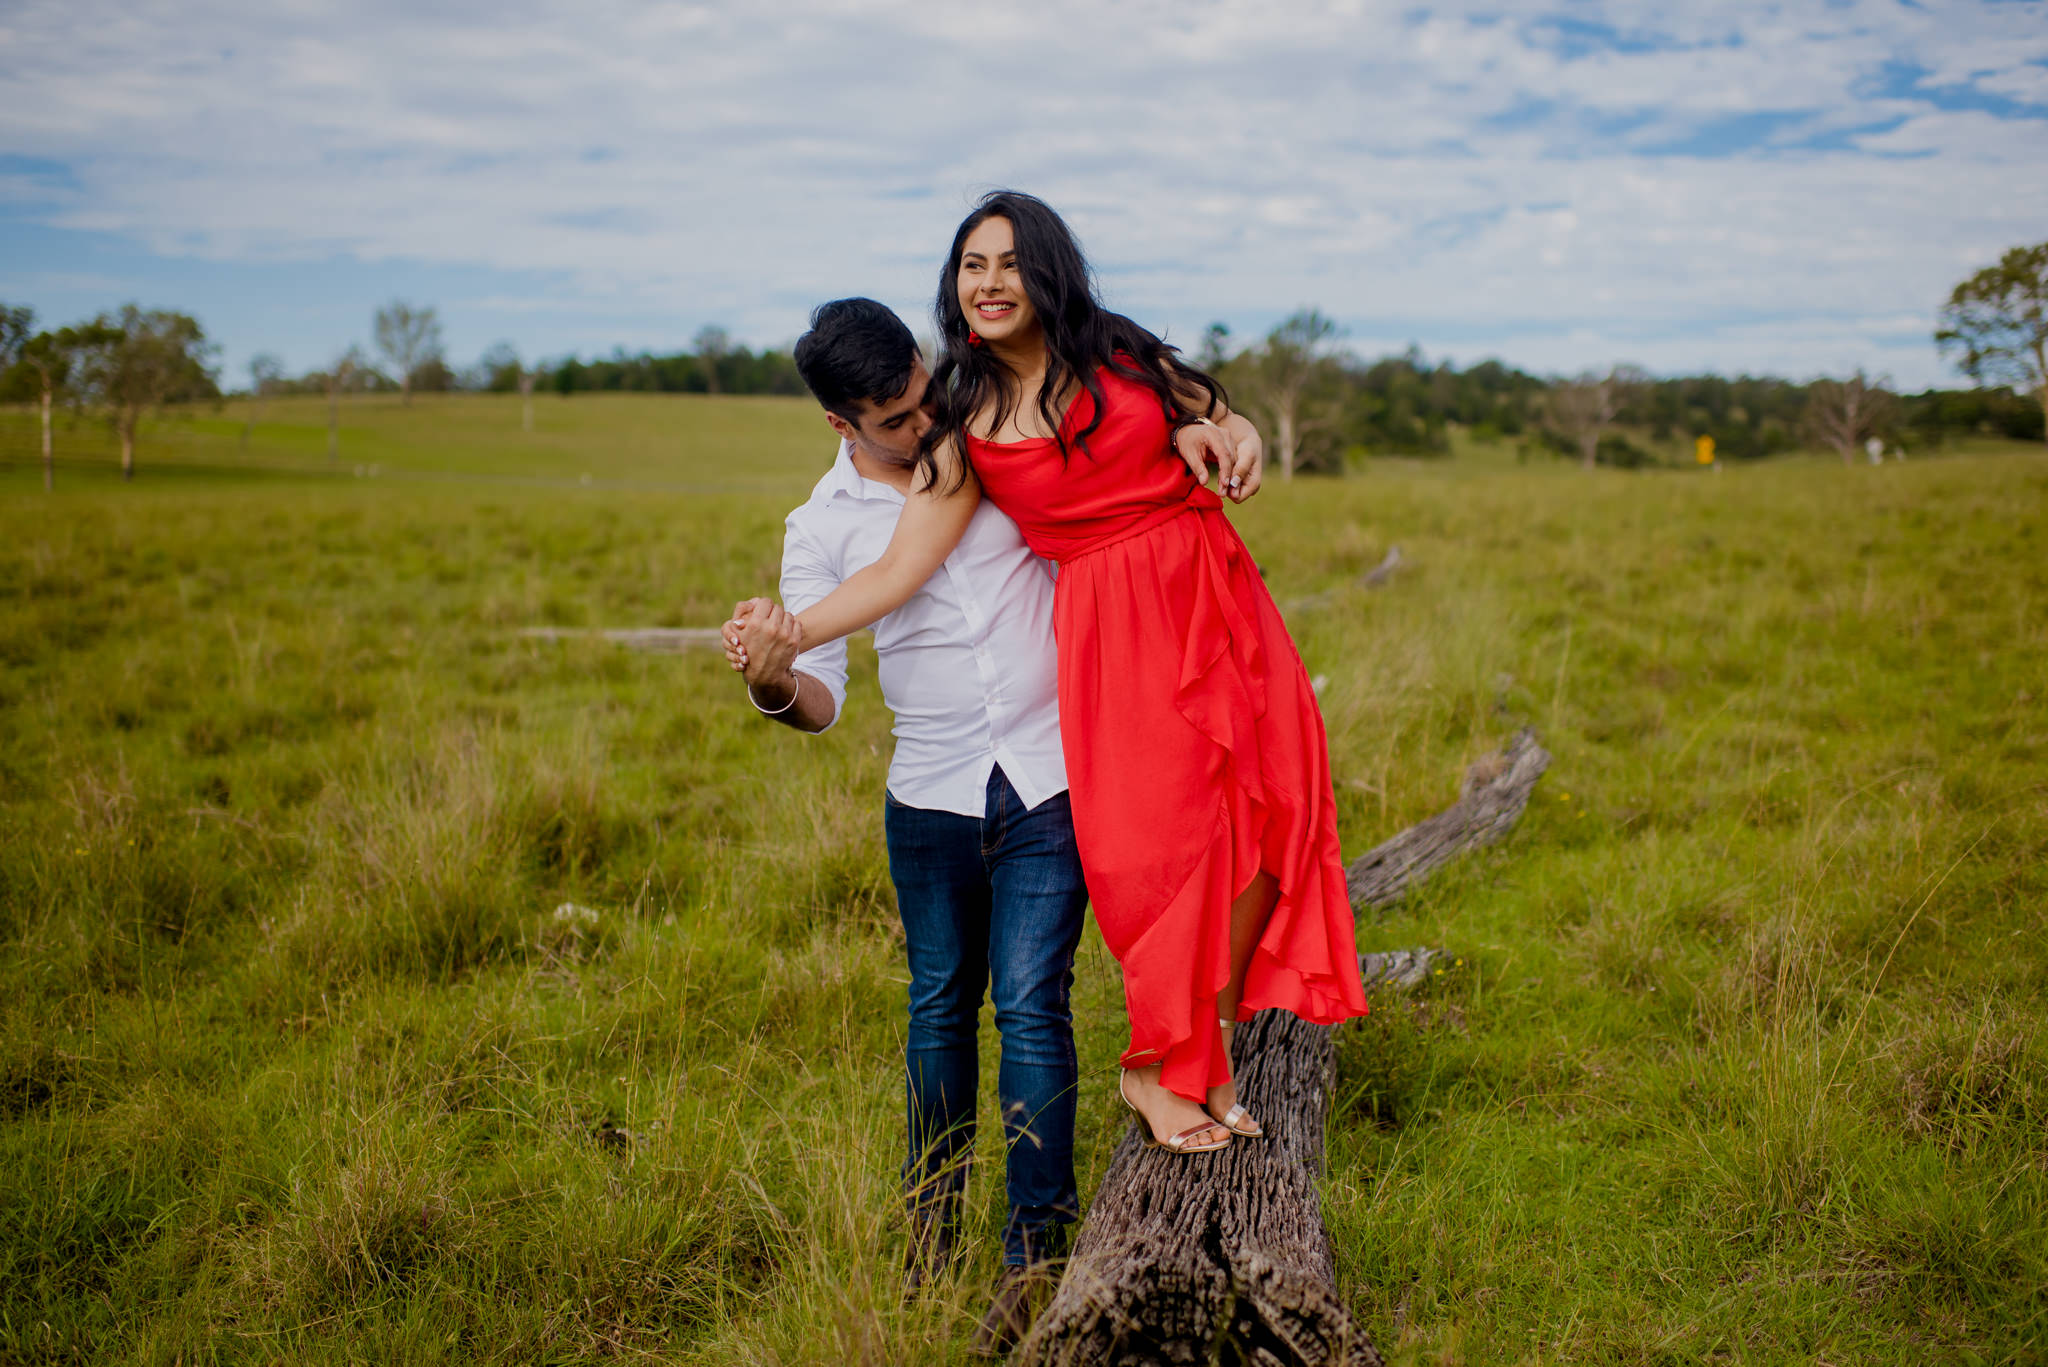 Boy holds his girlfriends hand and kisses her arm as he helps her walk across a fallen log in a grassy field